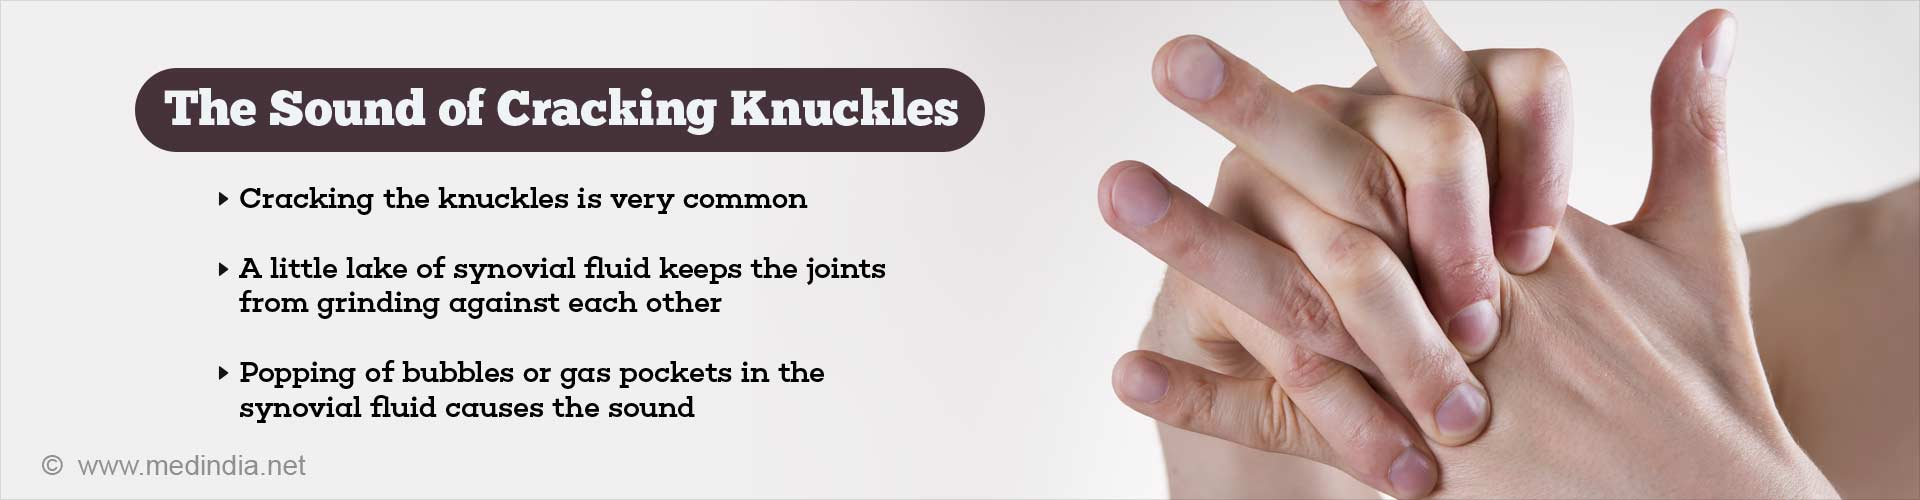 The sound of cracking knuckles - cracking the knuckles is very common - a little lake of syovial fluid keeps the joints from grinding against each other - popping of bubbles or gas pockets in the synovial fluid causes the sound